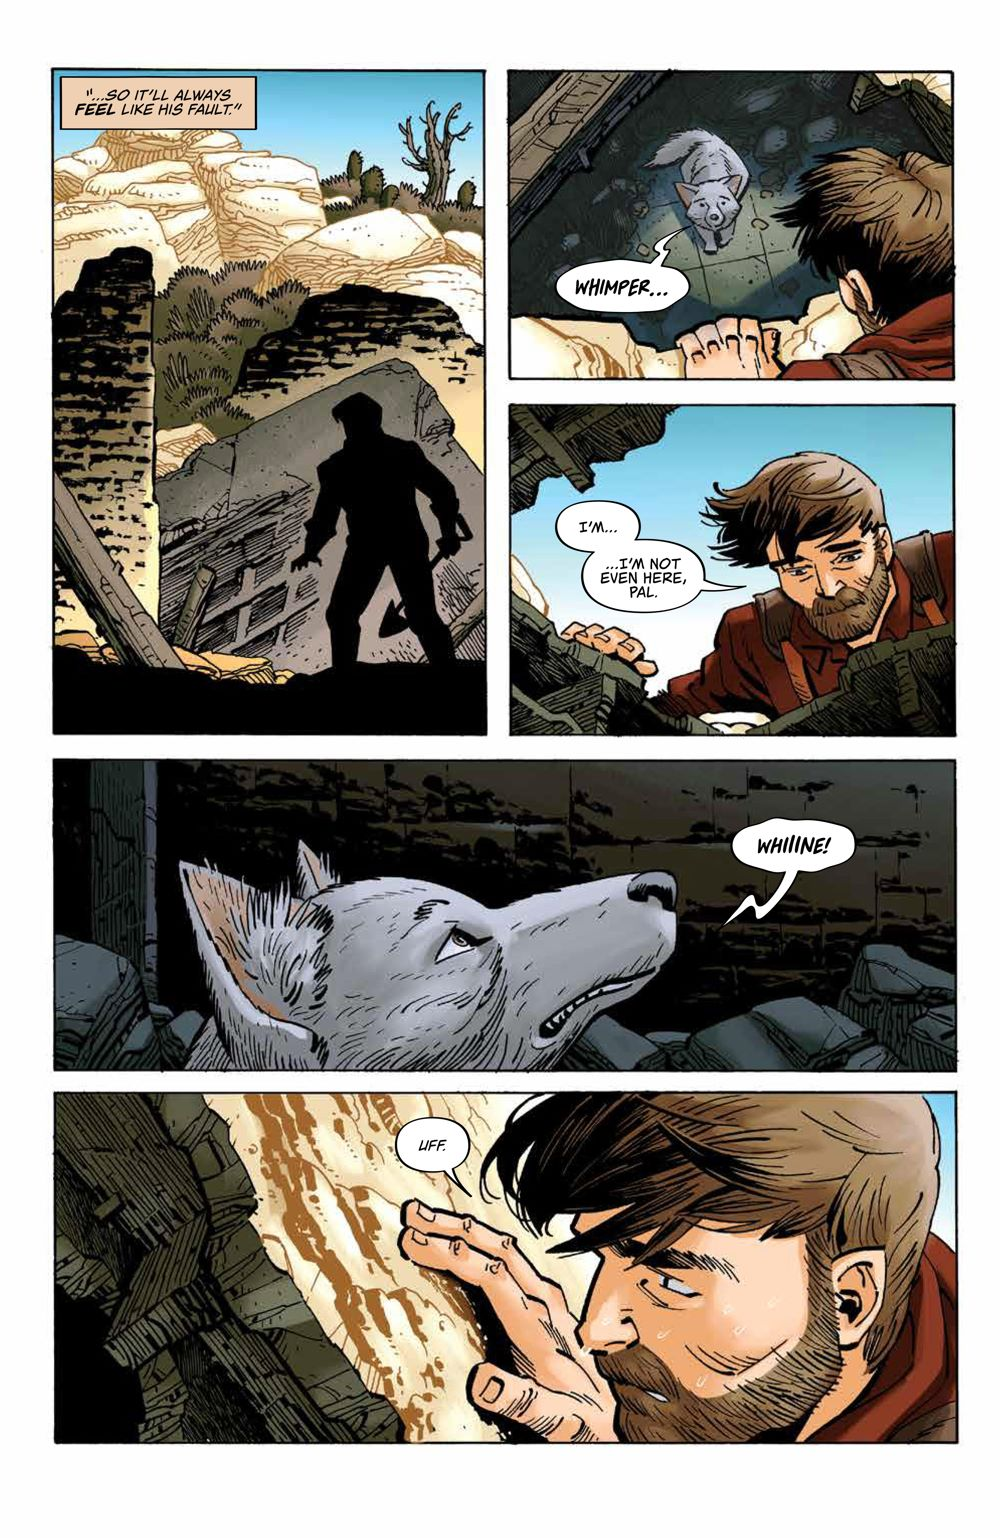 Firefly_027_PRESS_8 ComicList Previews: FIREFLY #27